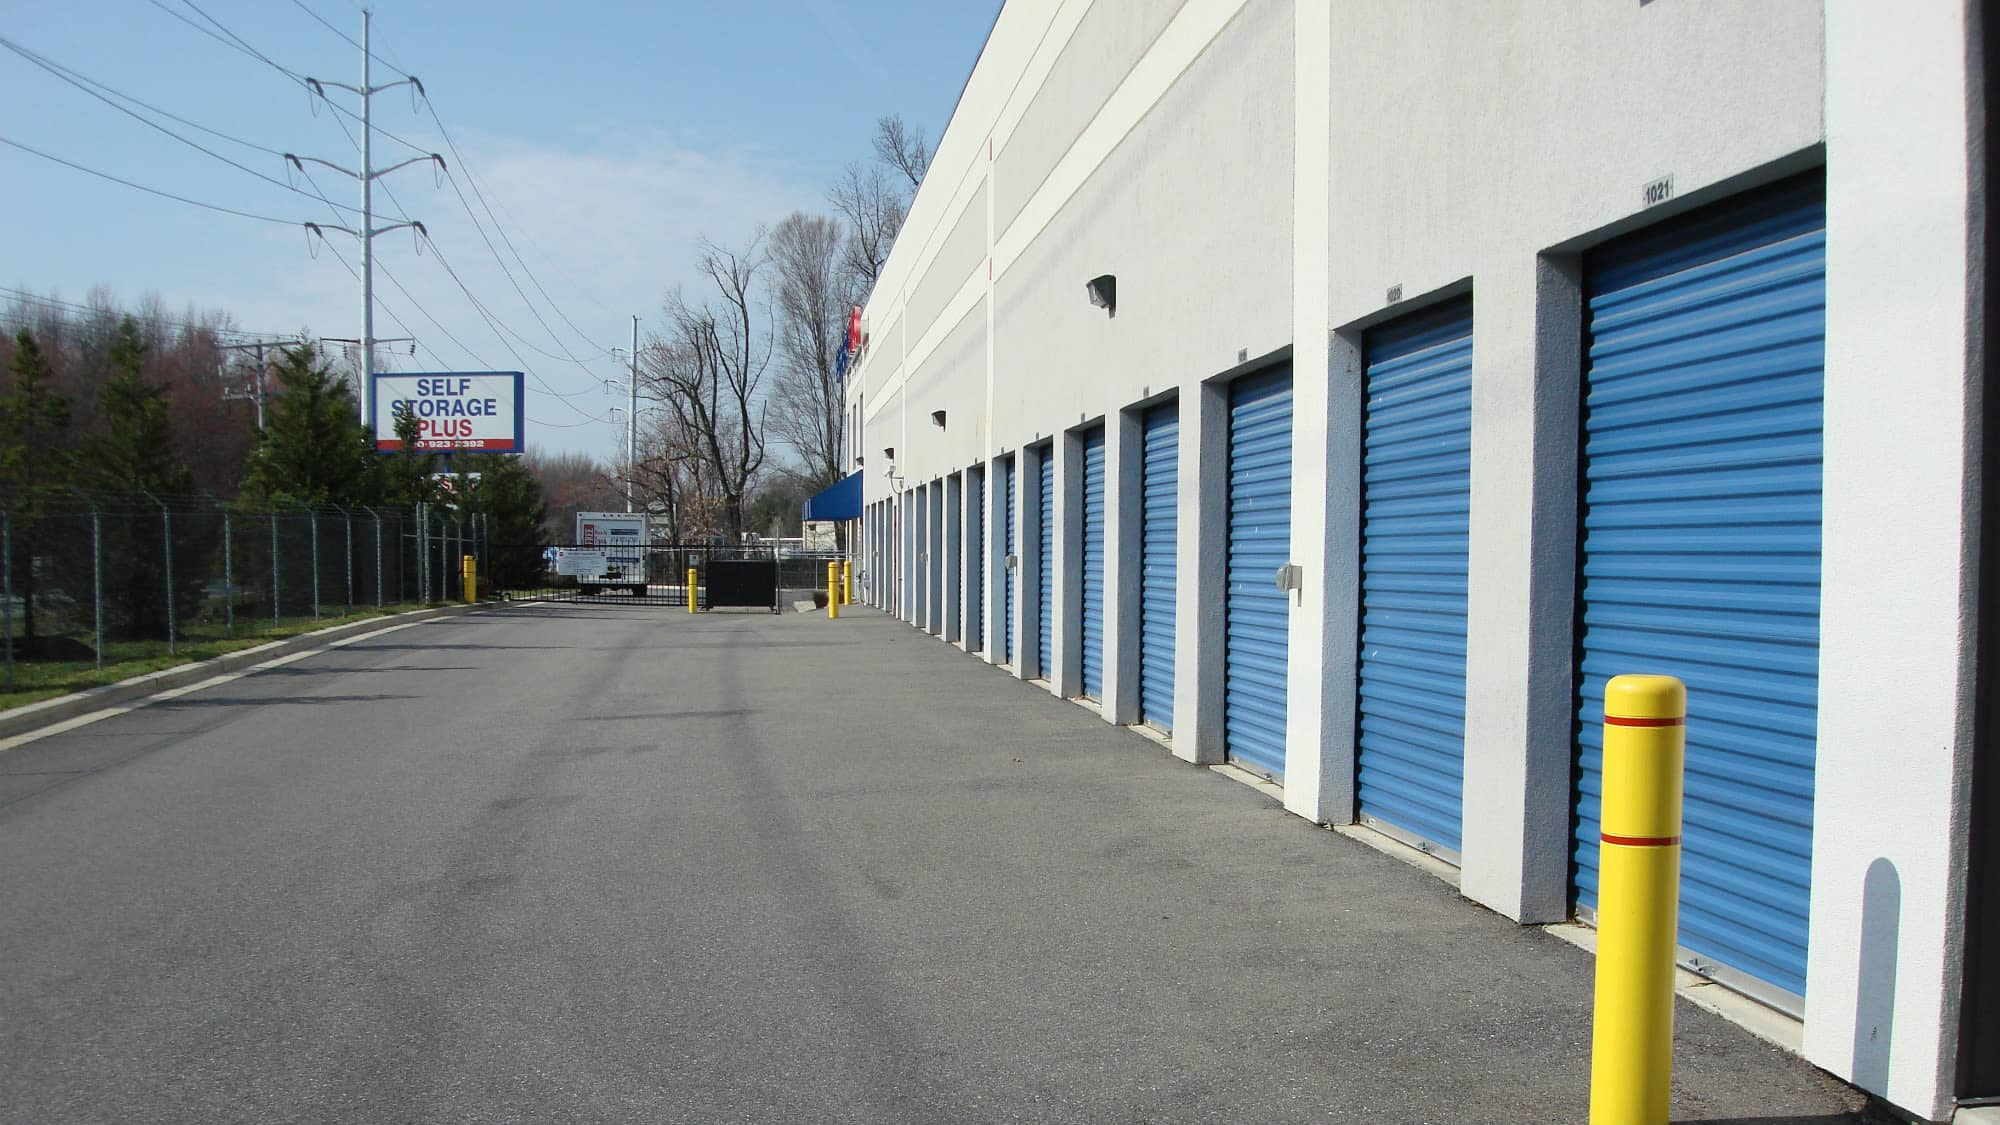 Wide driveways at Self Storage Plus in Gambrills, MD